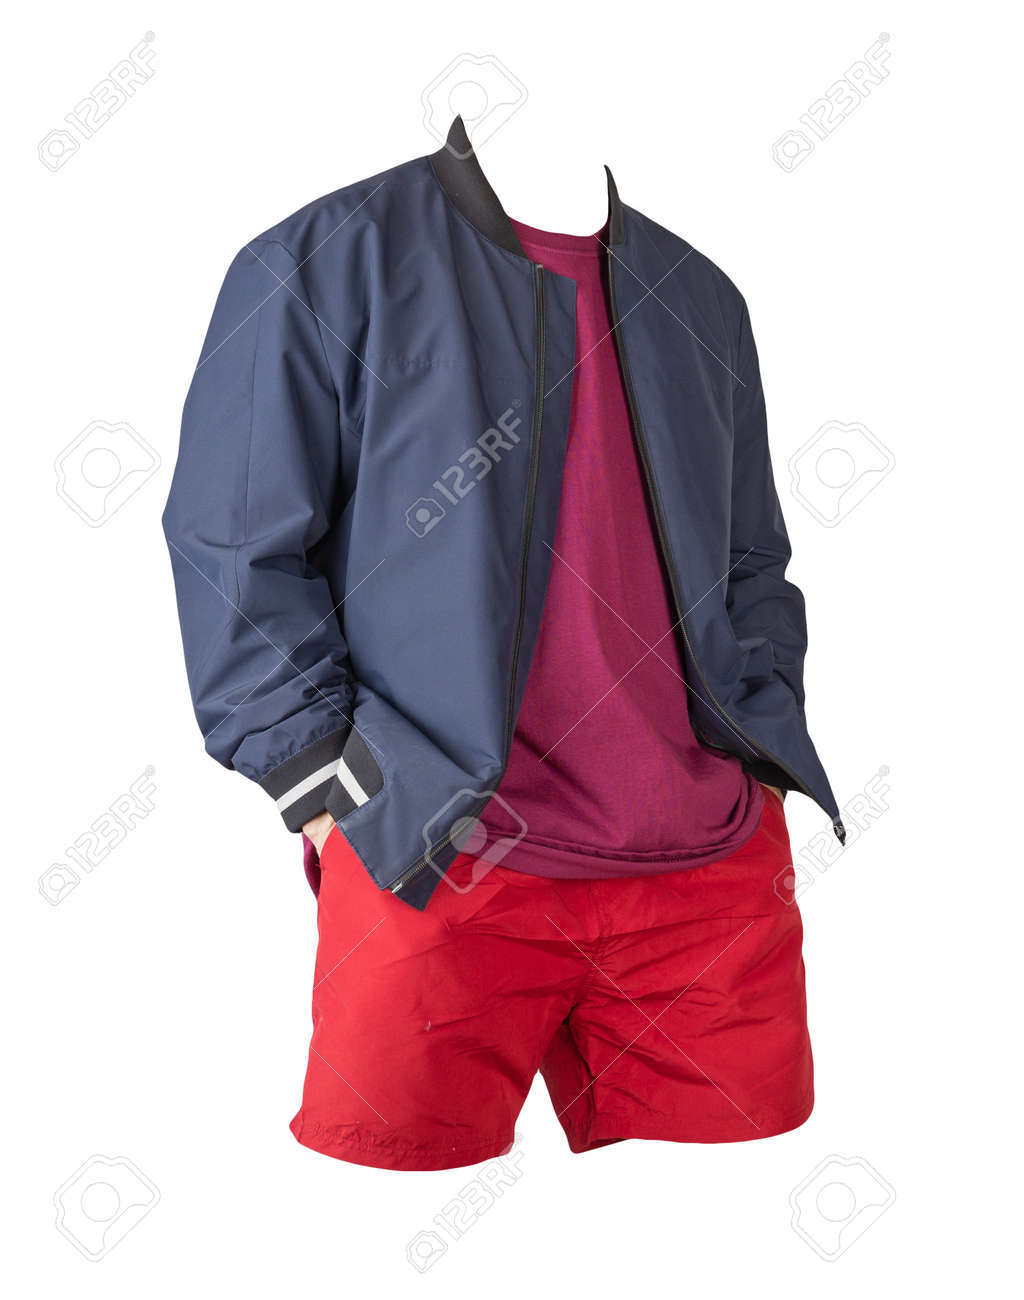 mens dark blue bomber jacket, burgundy t-shirt and sports red shorts isolated on white background. fashionable casual wear - 172140034